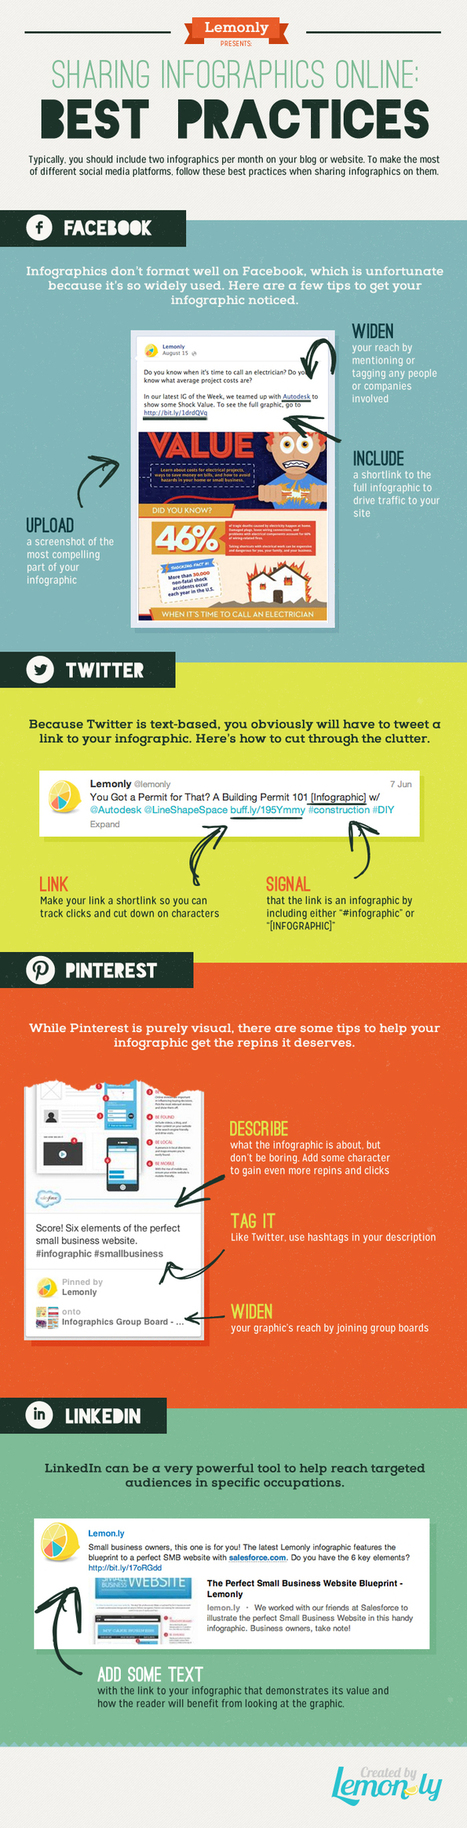 How to Share Infographics on Social Media - Best Practices [Infographic] | BI Revolution | Scoop.it